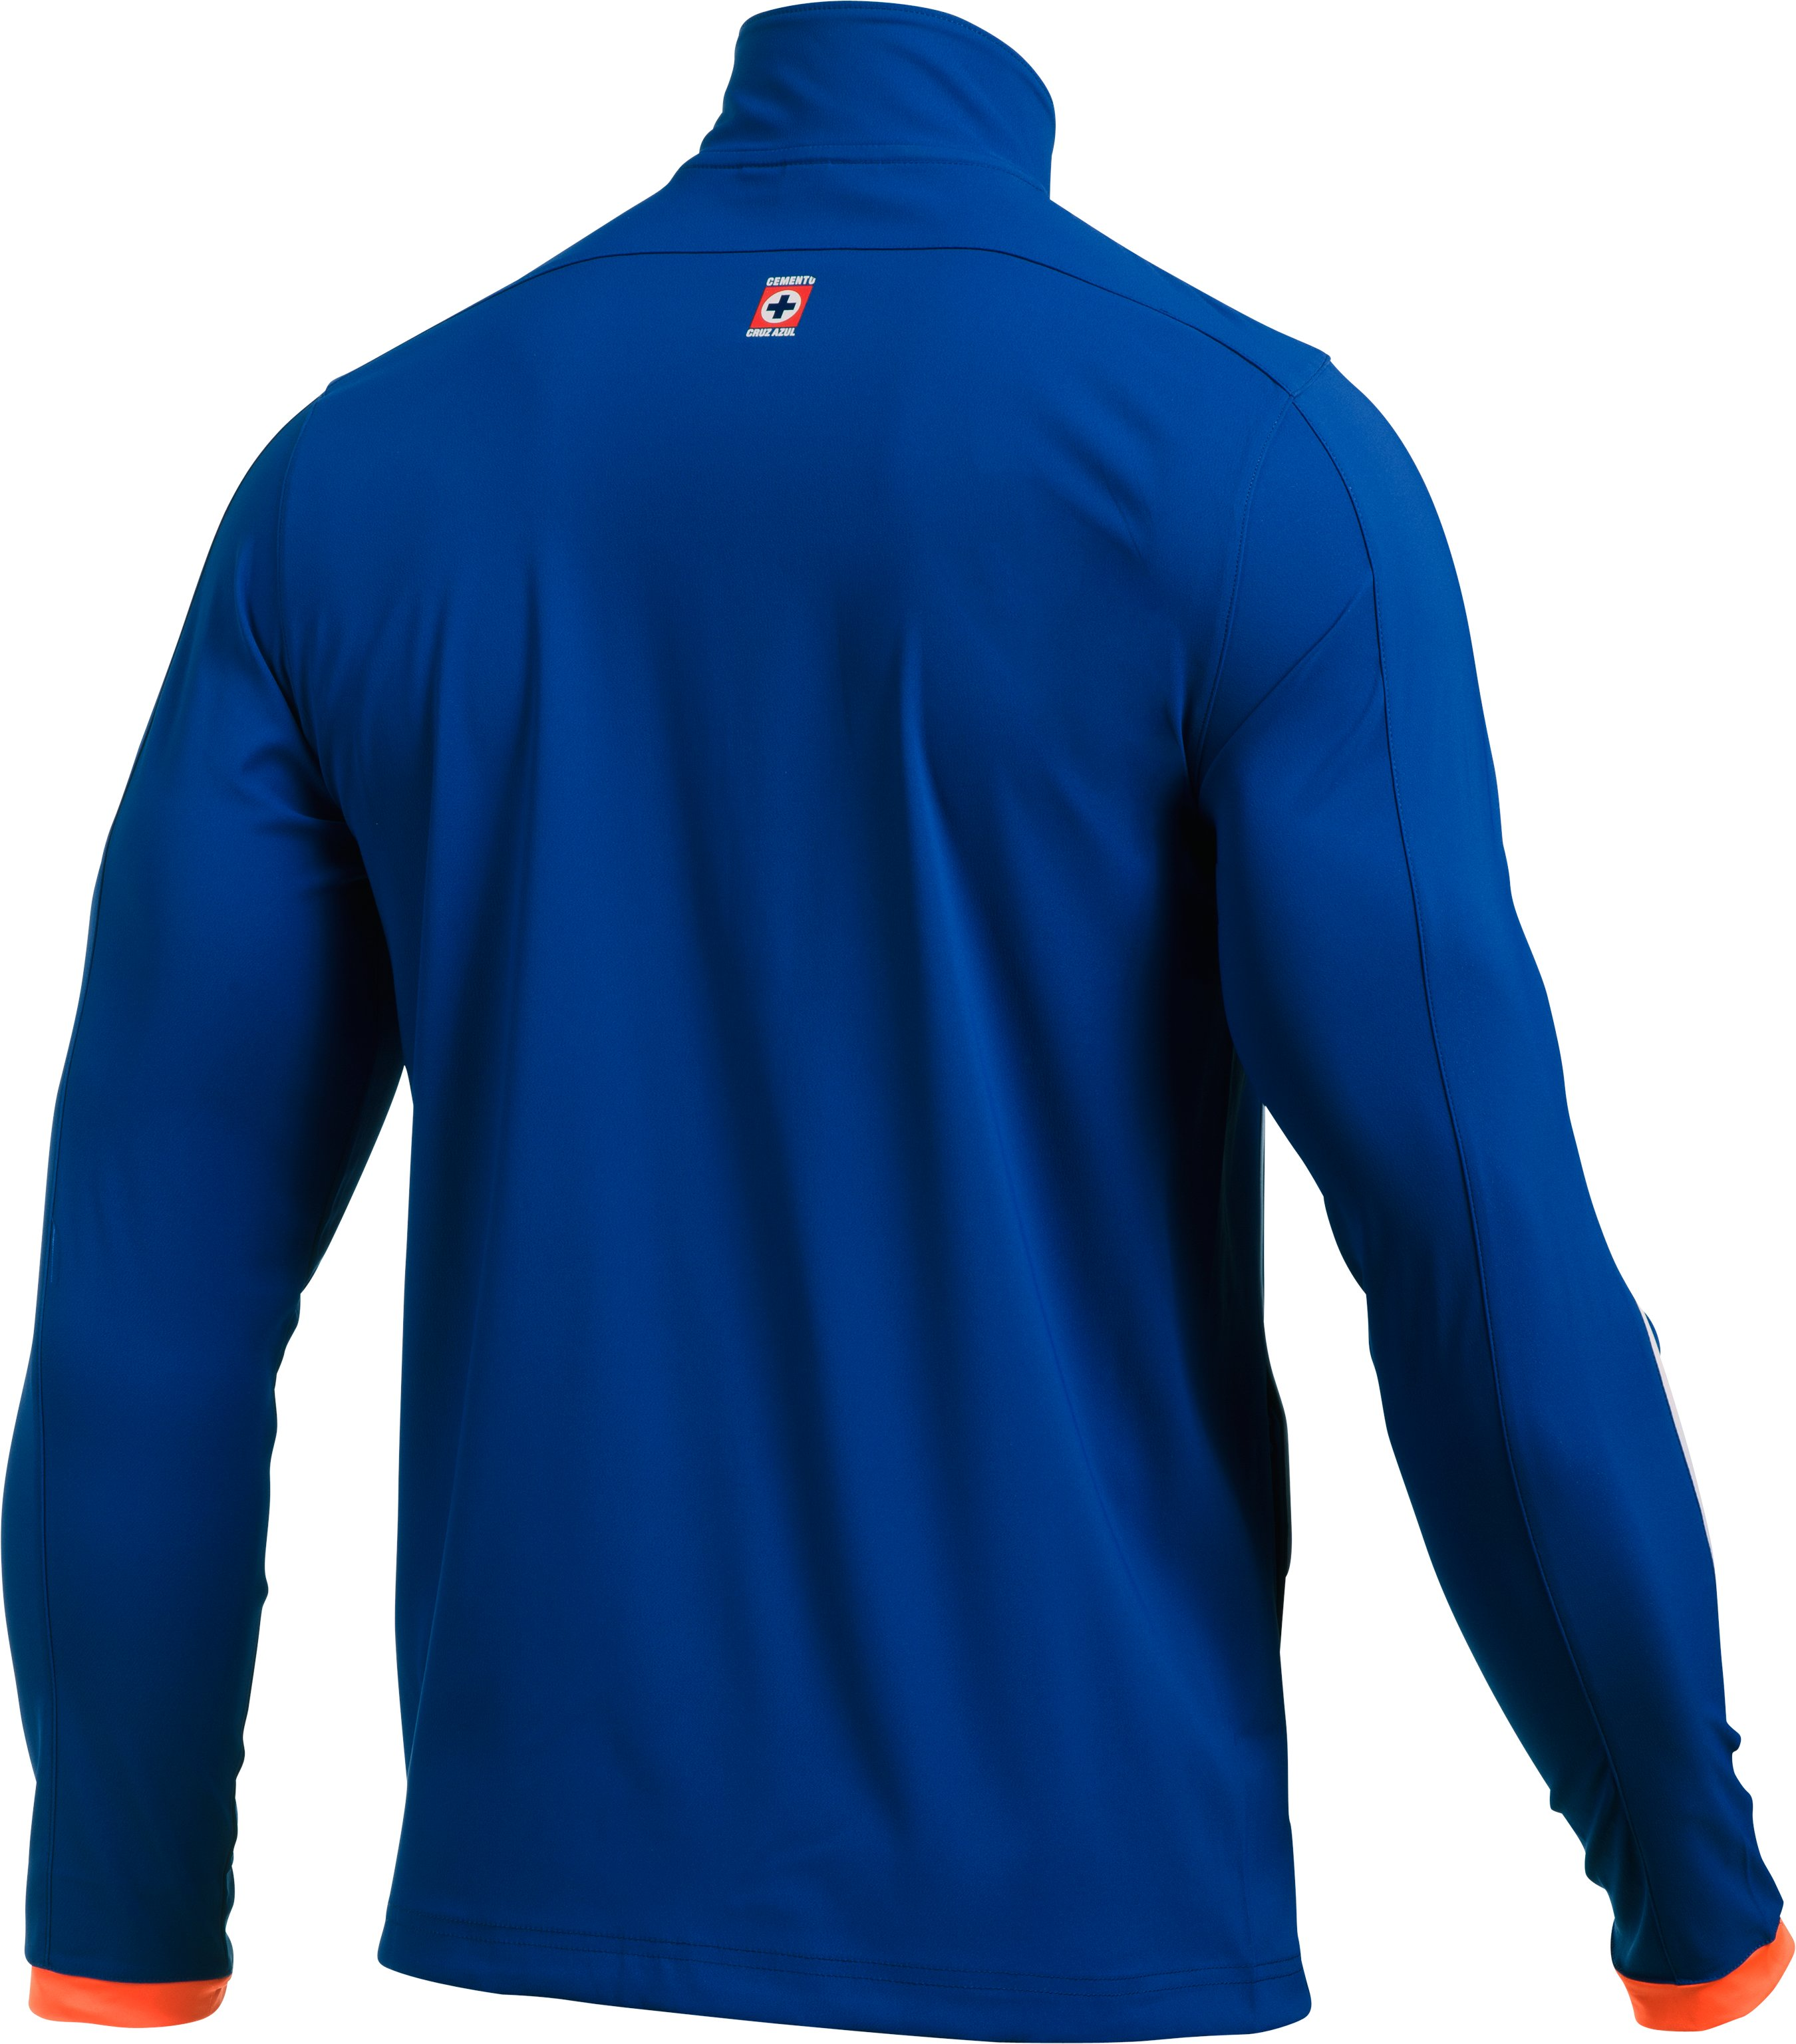 Men's Cruz Azul UA Storm Travel Jacket, Royal